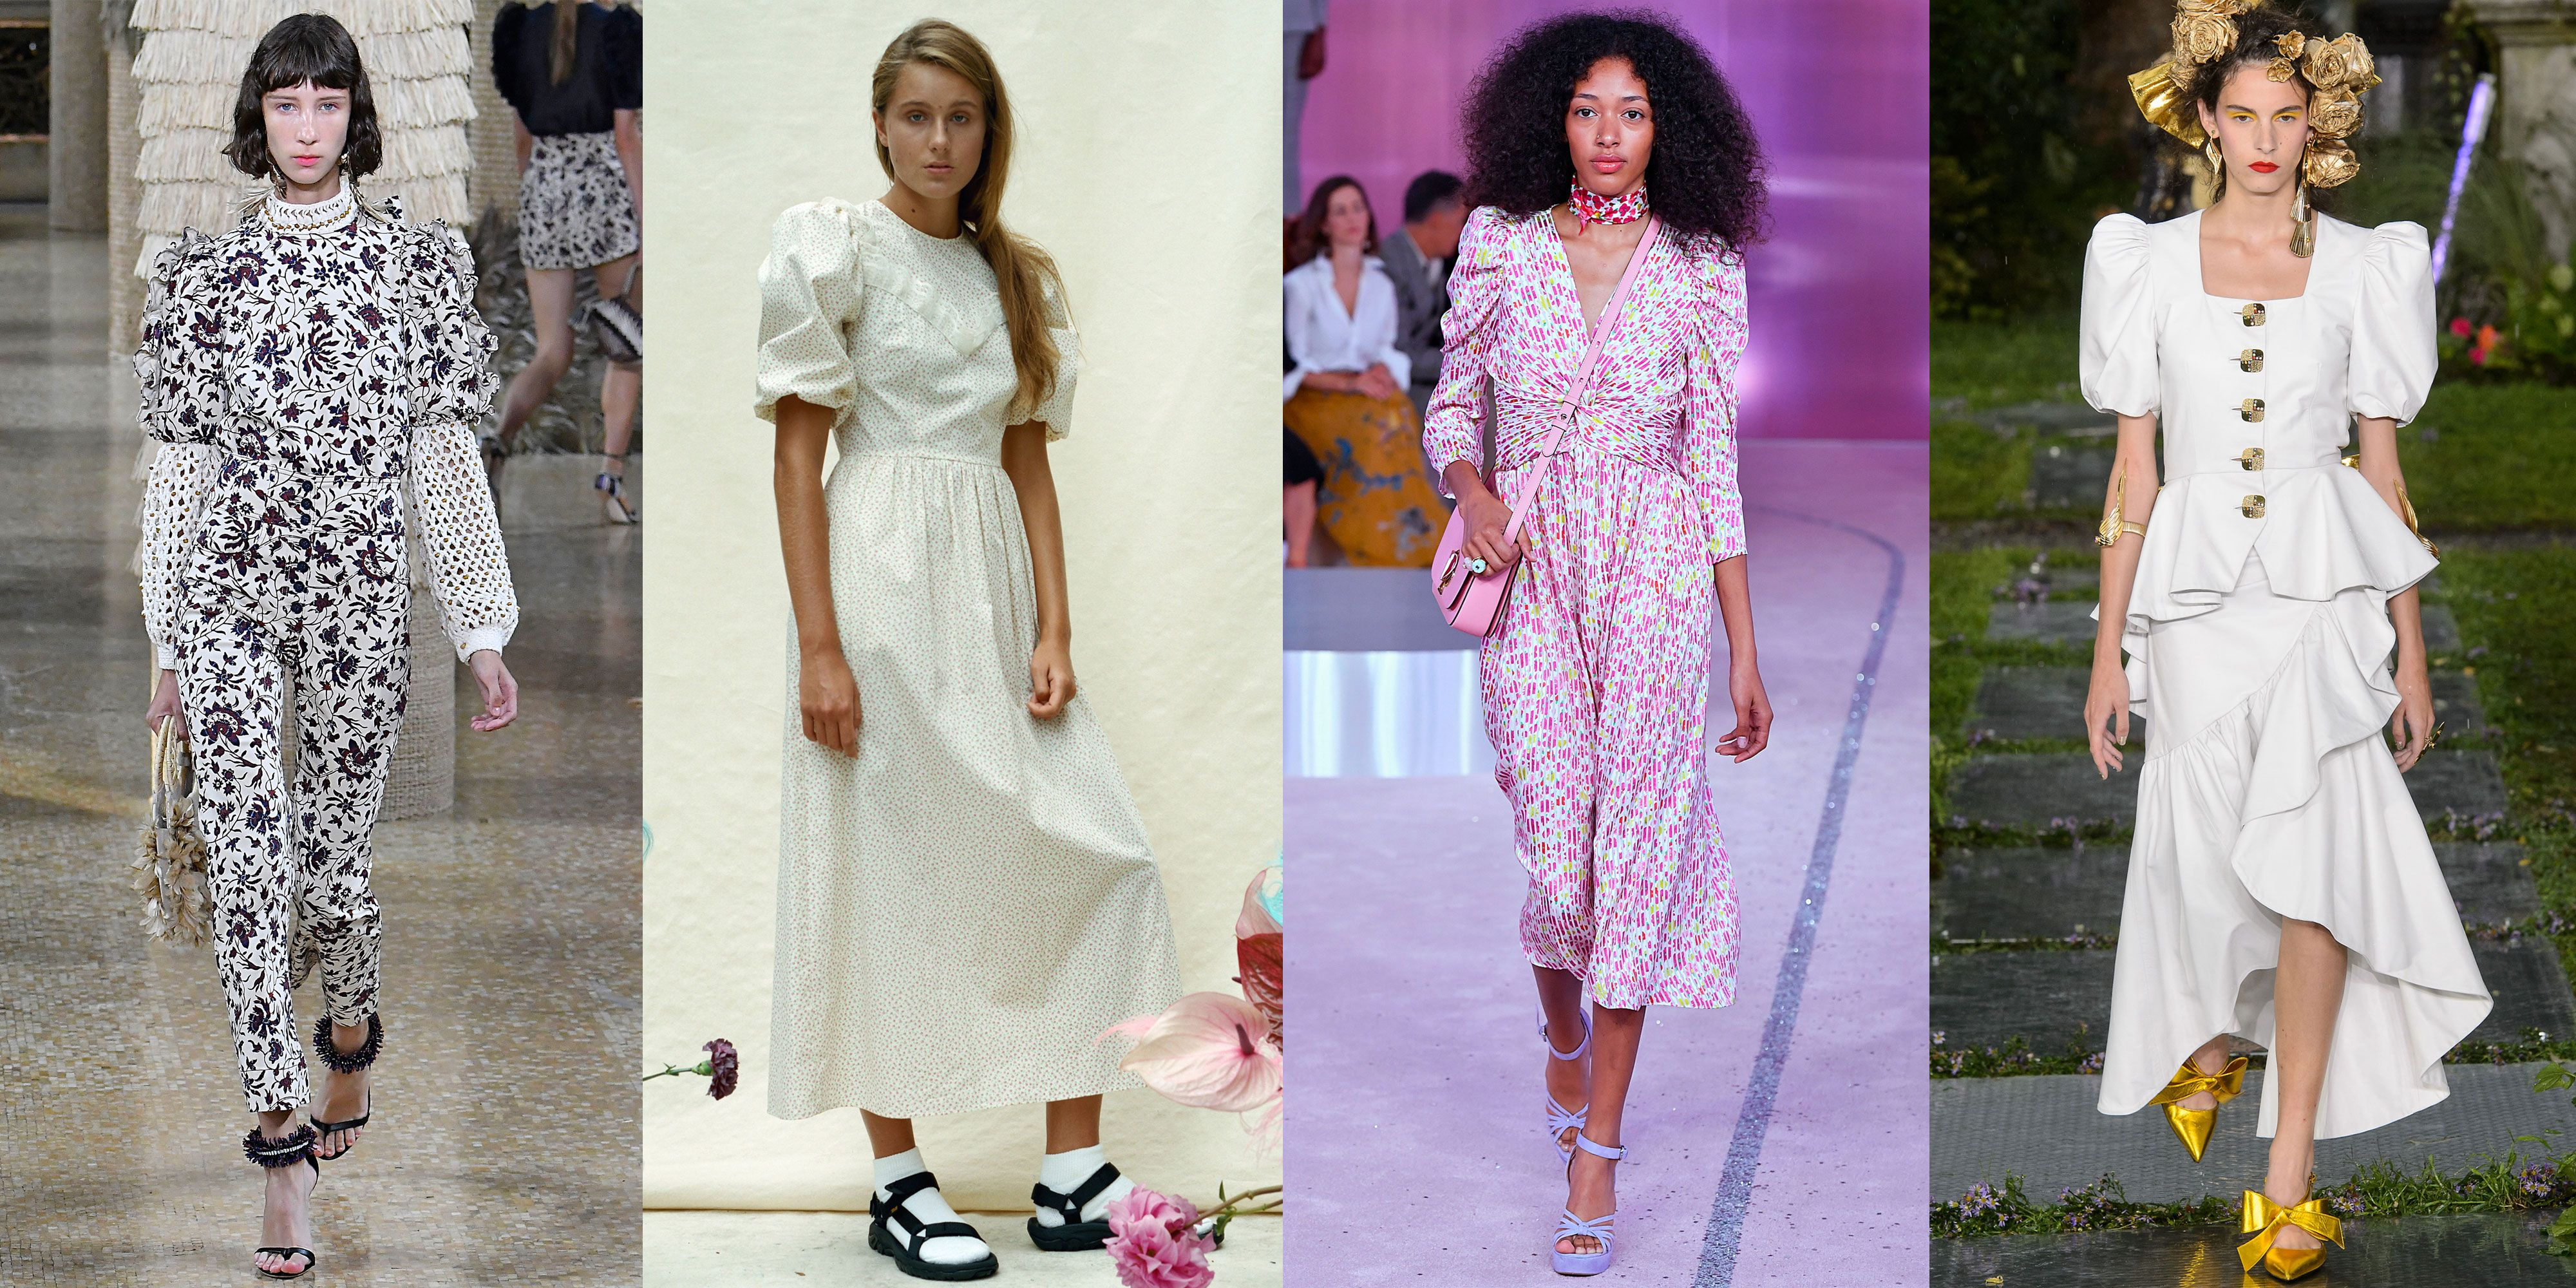 Puffy Sleeves As seen at Ulla Johnson, Sandy Liang, Kate Spade, Rodarte This '80s style was a can't-miss look in designer shows and presentations. Ulla Johnson added puffy sleeves into her jumpsuits, while Nicola Glass brought the trend, via a floral dress, into her first collection for Kate Spade .